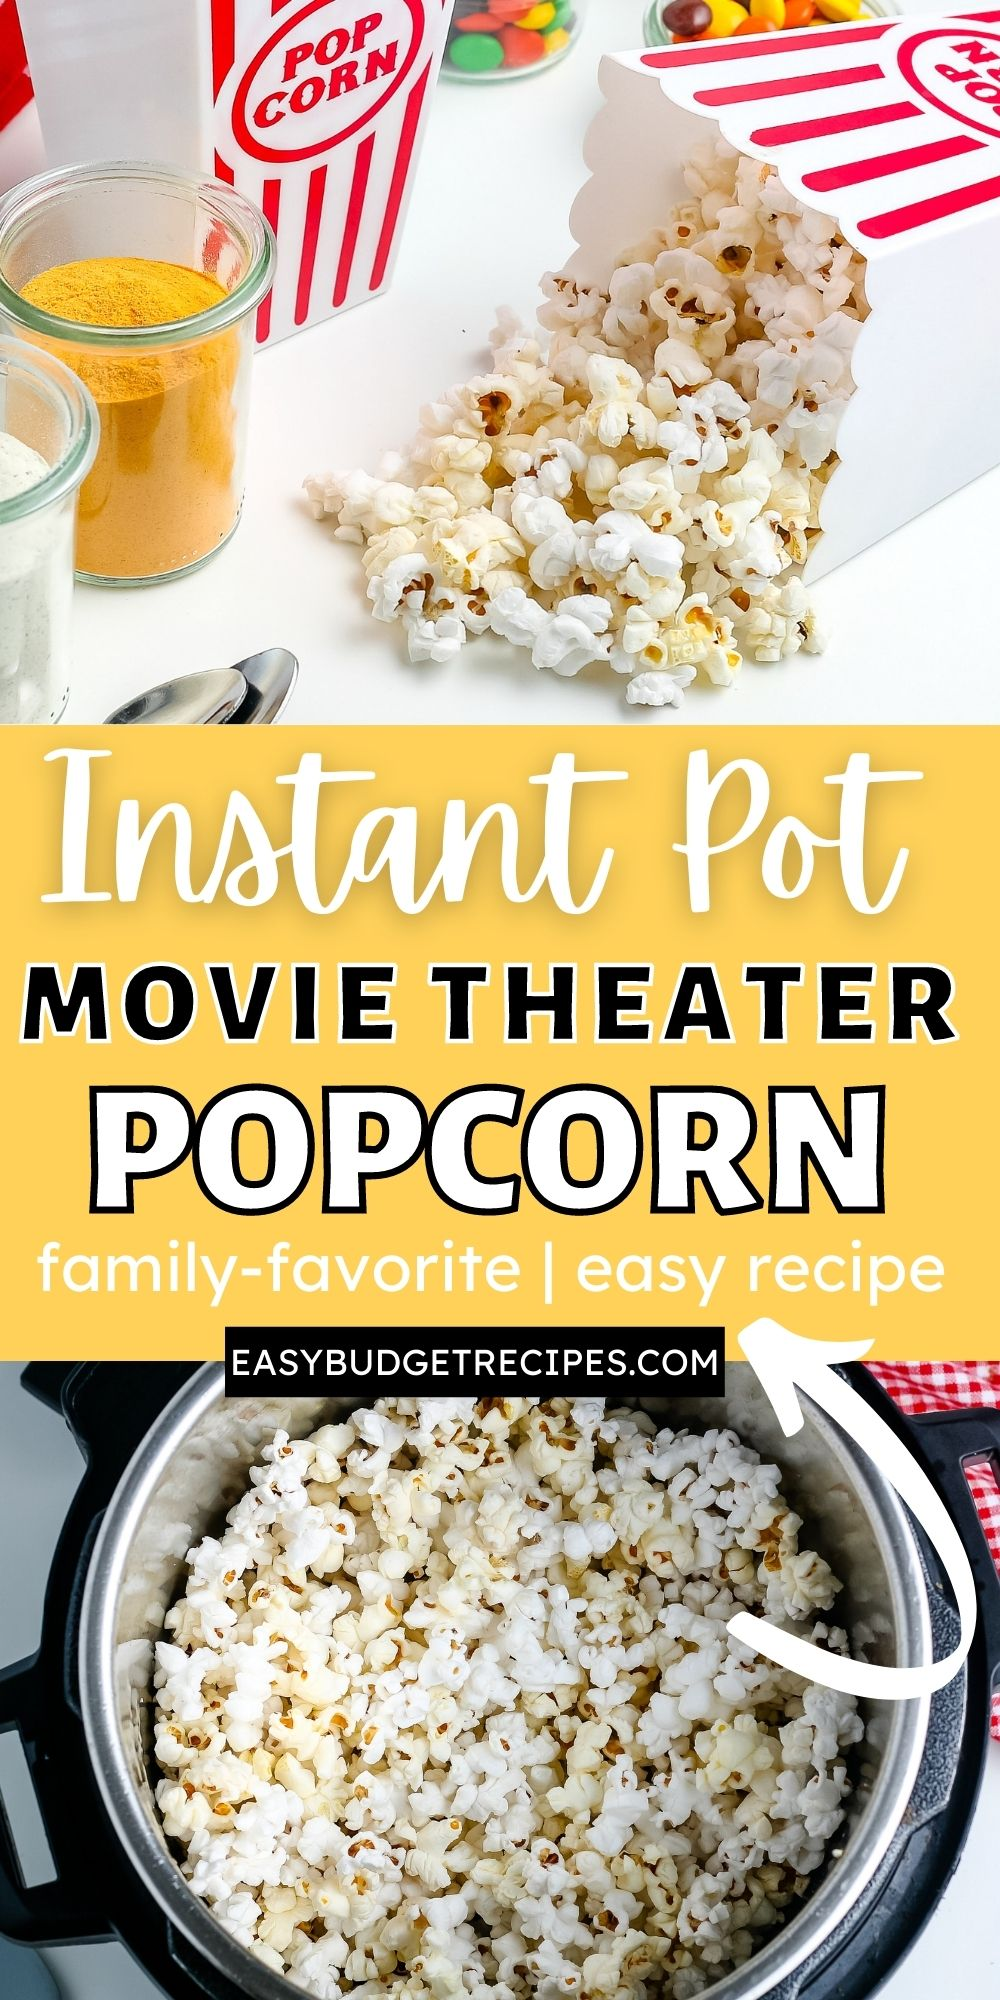 This Instant Pot Popcorn recipe is easy to make and tastes very similar to movie theater popcorn! Three ingredients and about 15 minutes are all you need to make it! via @easybudgetrecipes